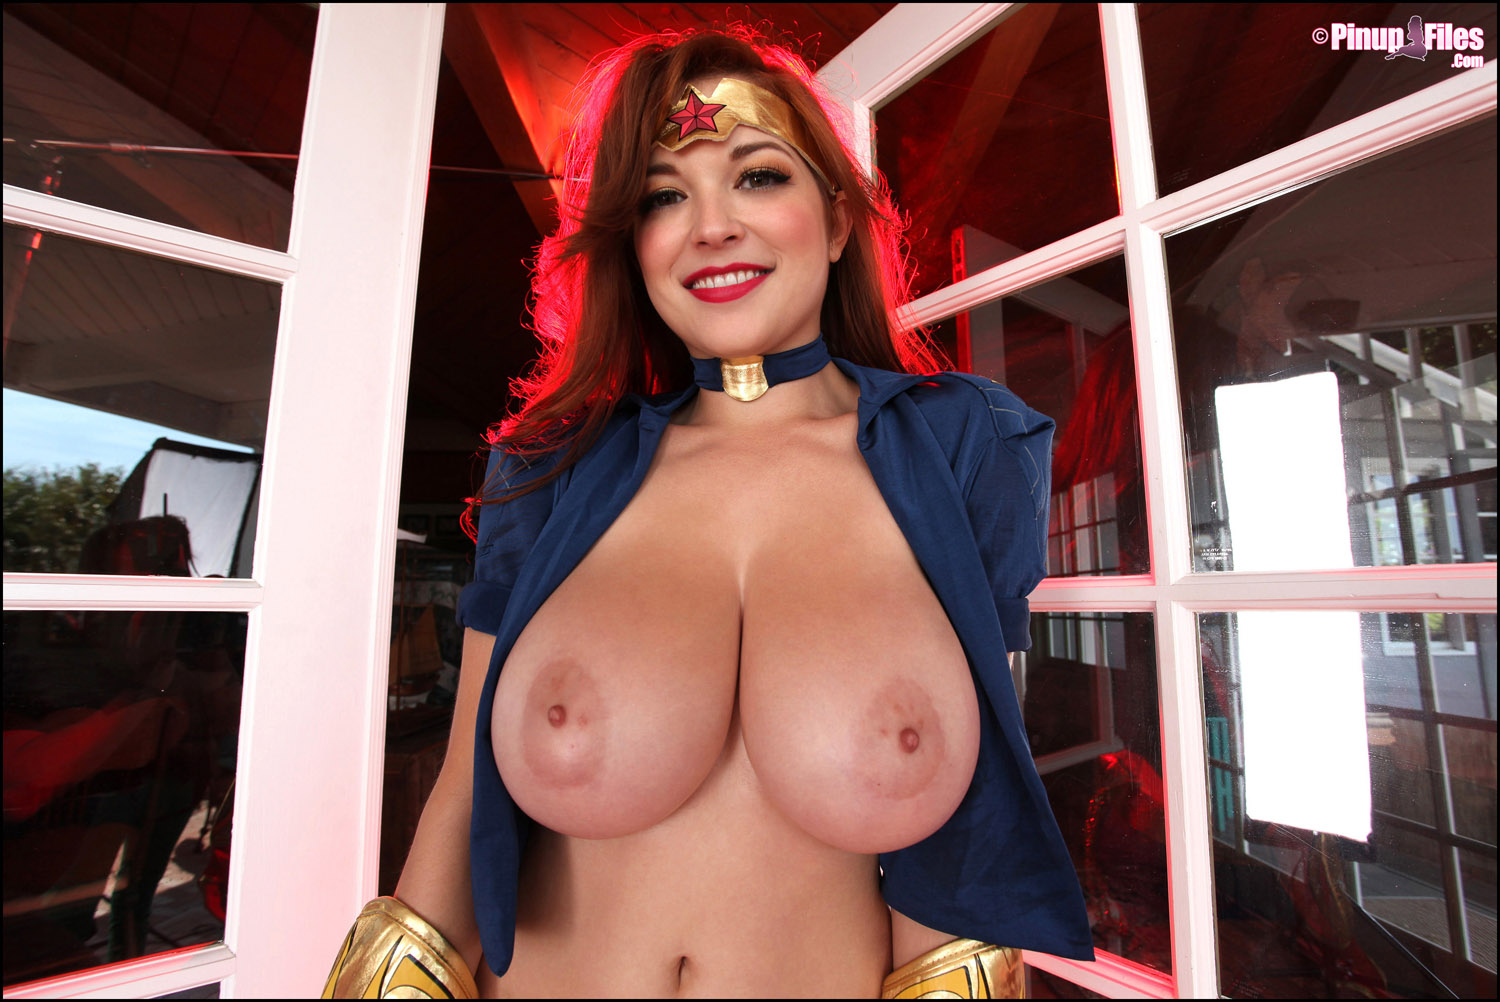 fowler porn Tessa as wonder woman